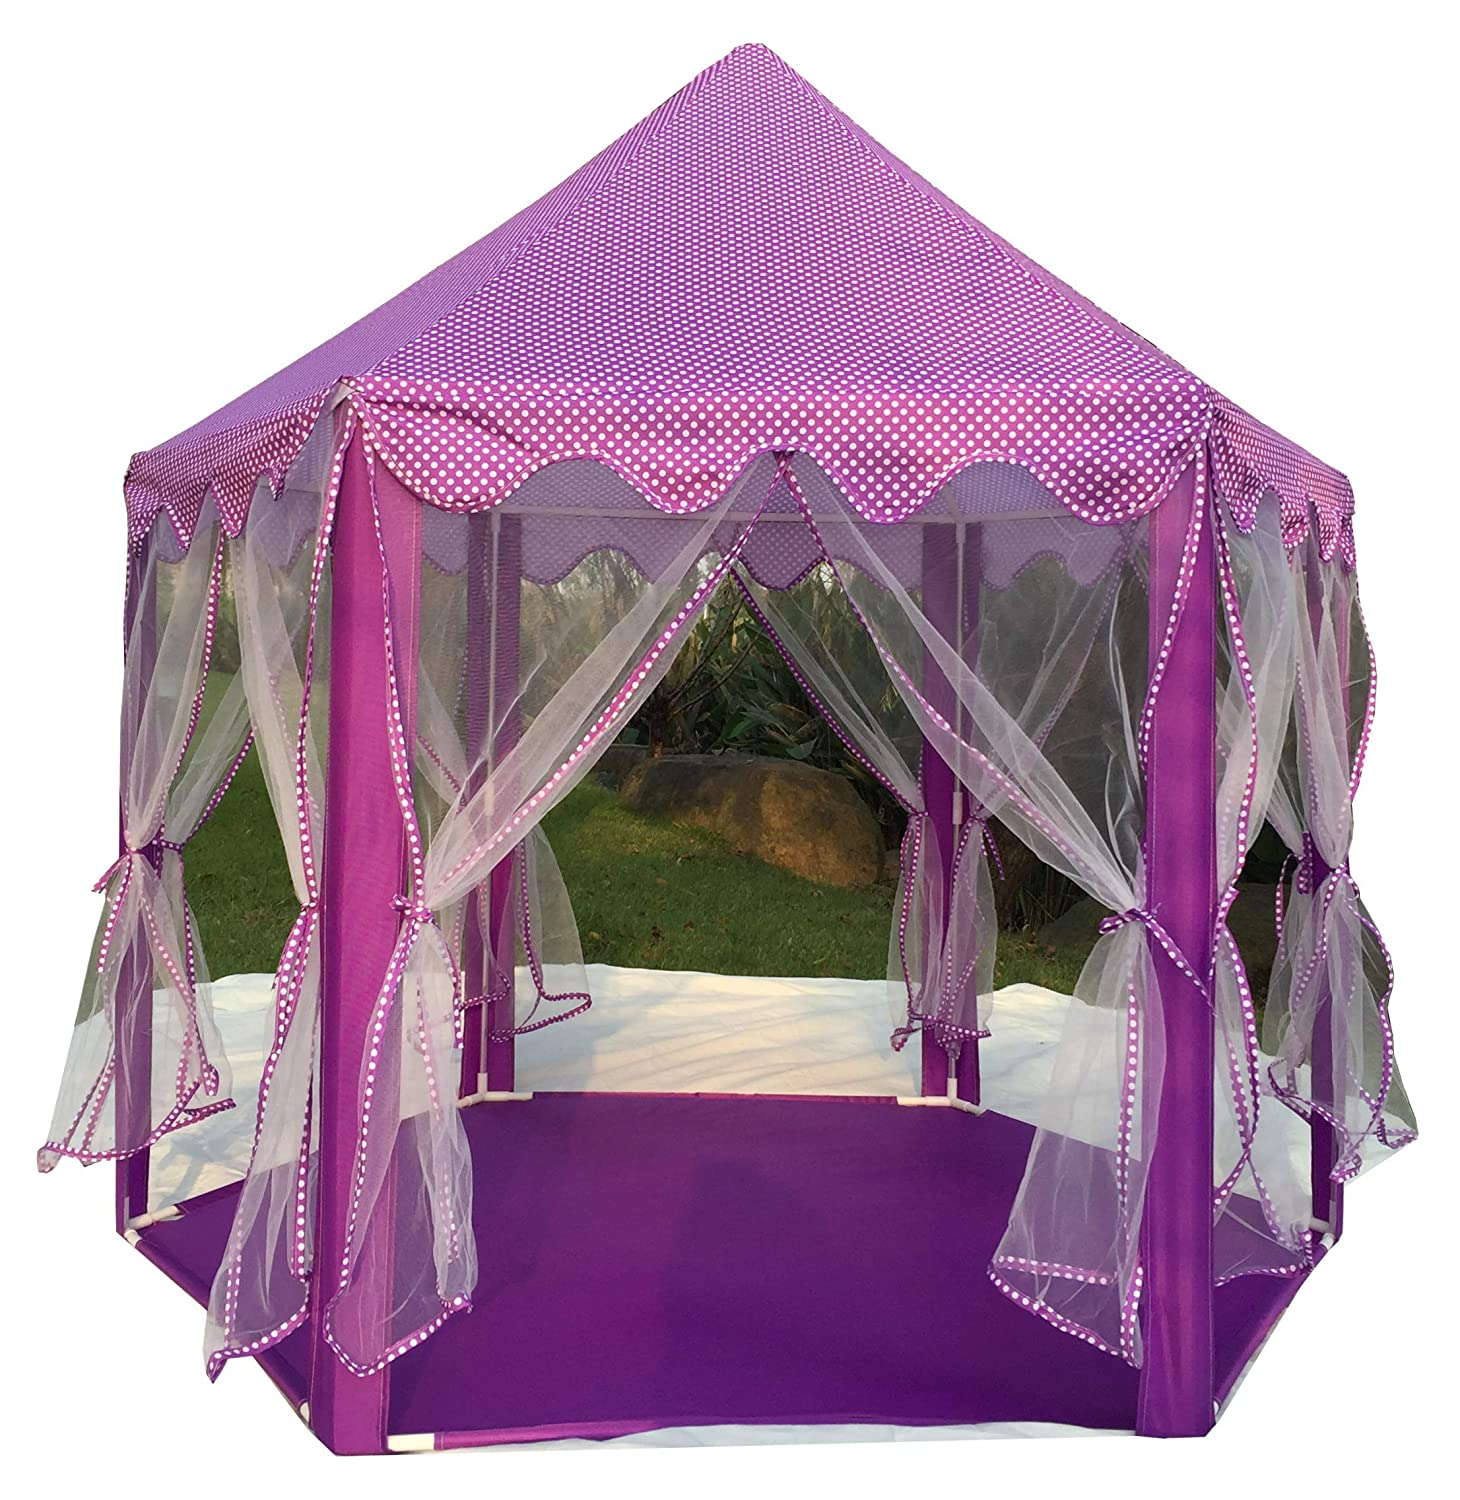 Pericross Hexagon Princess Play Tent with 33ft 100 LED Diodes AA Battery Powered Brass Wire Lights